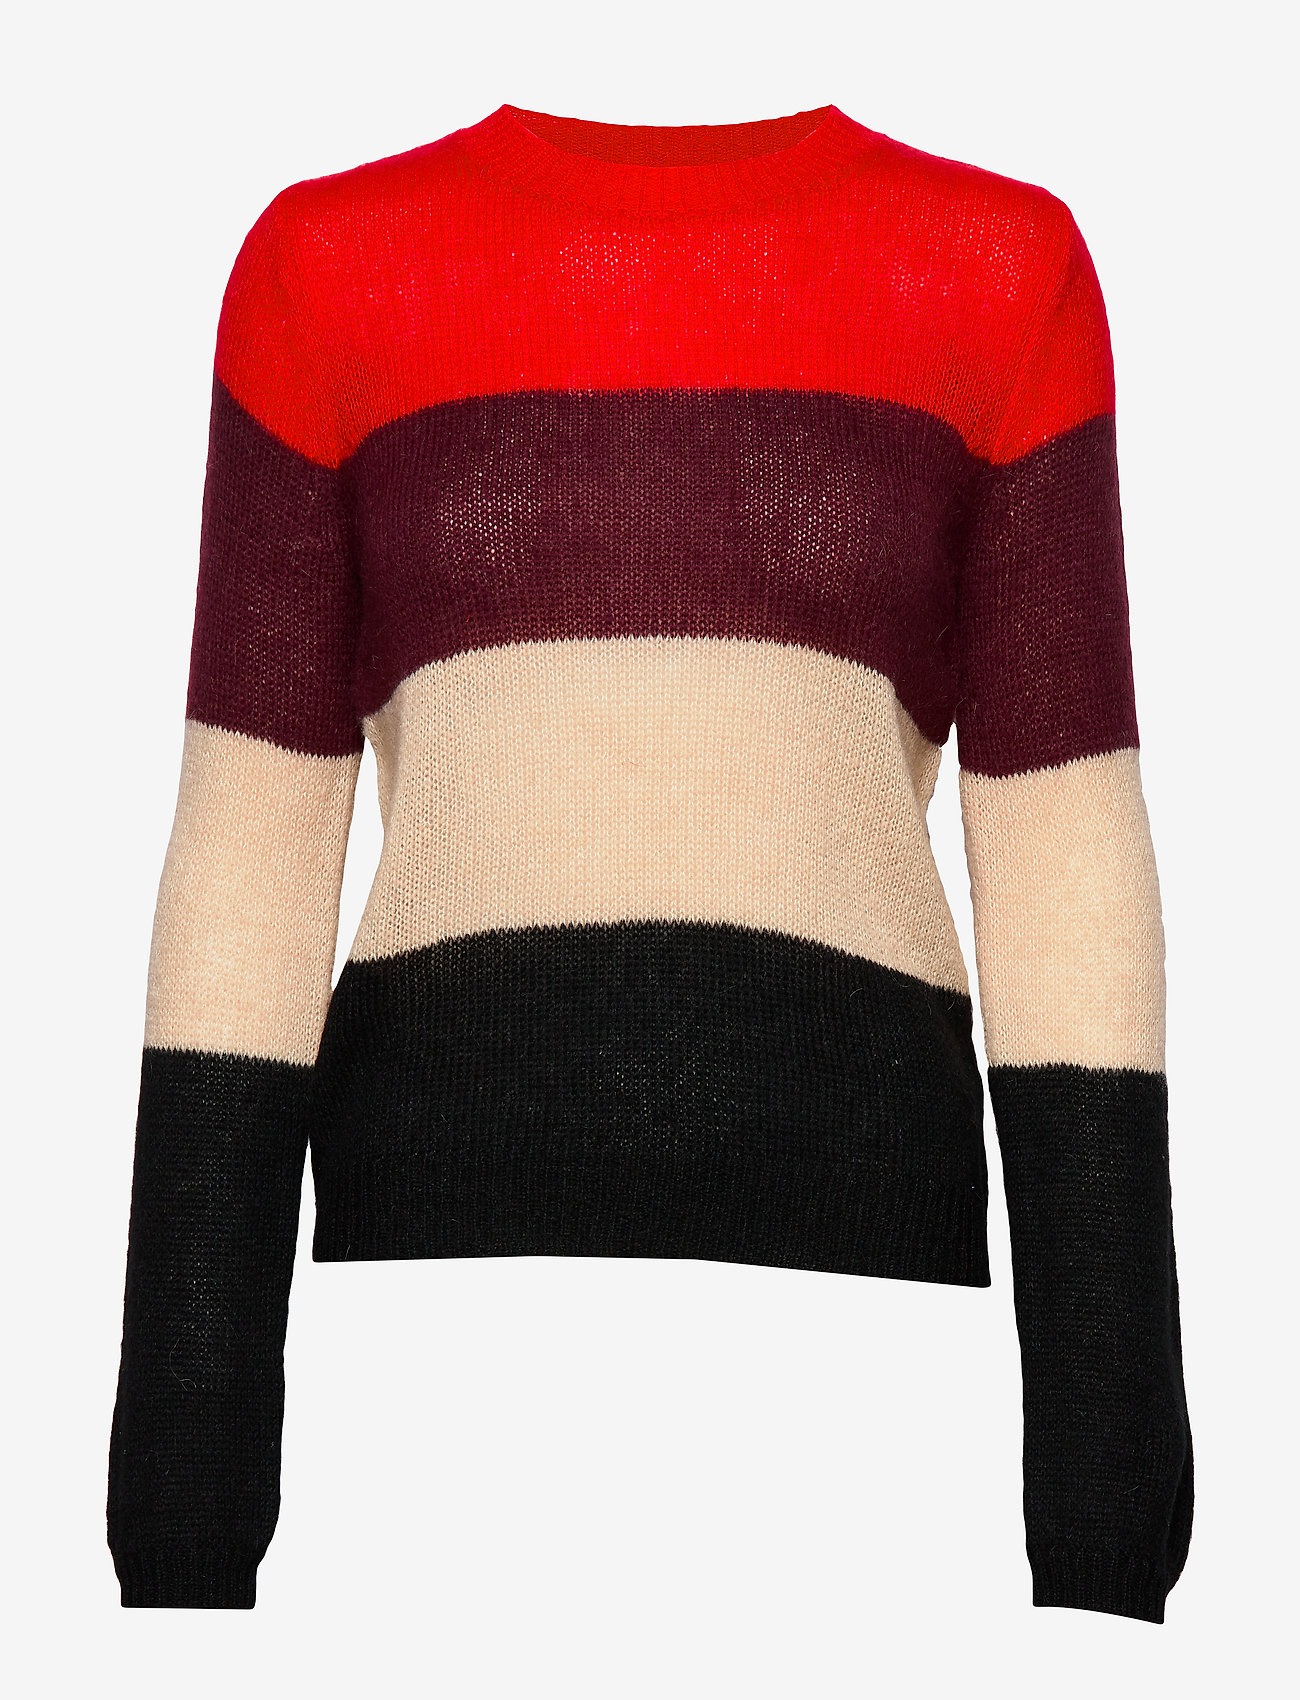 Taifun - PULLOVER LONG-SLEEVE - tröjor - lipstick red patterned - 0